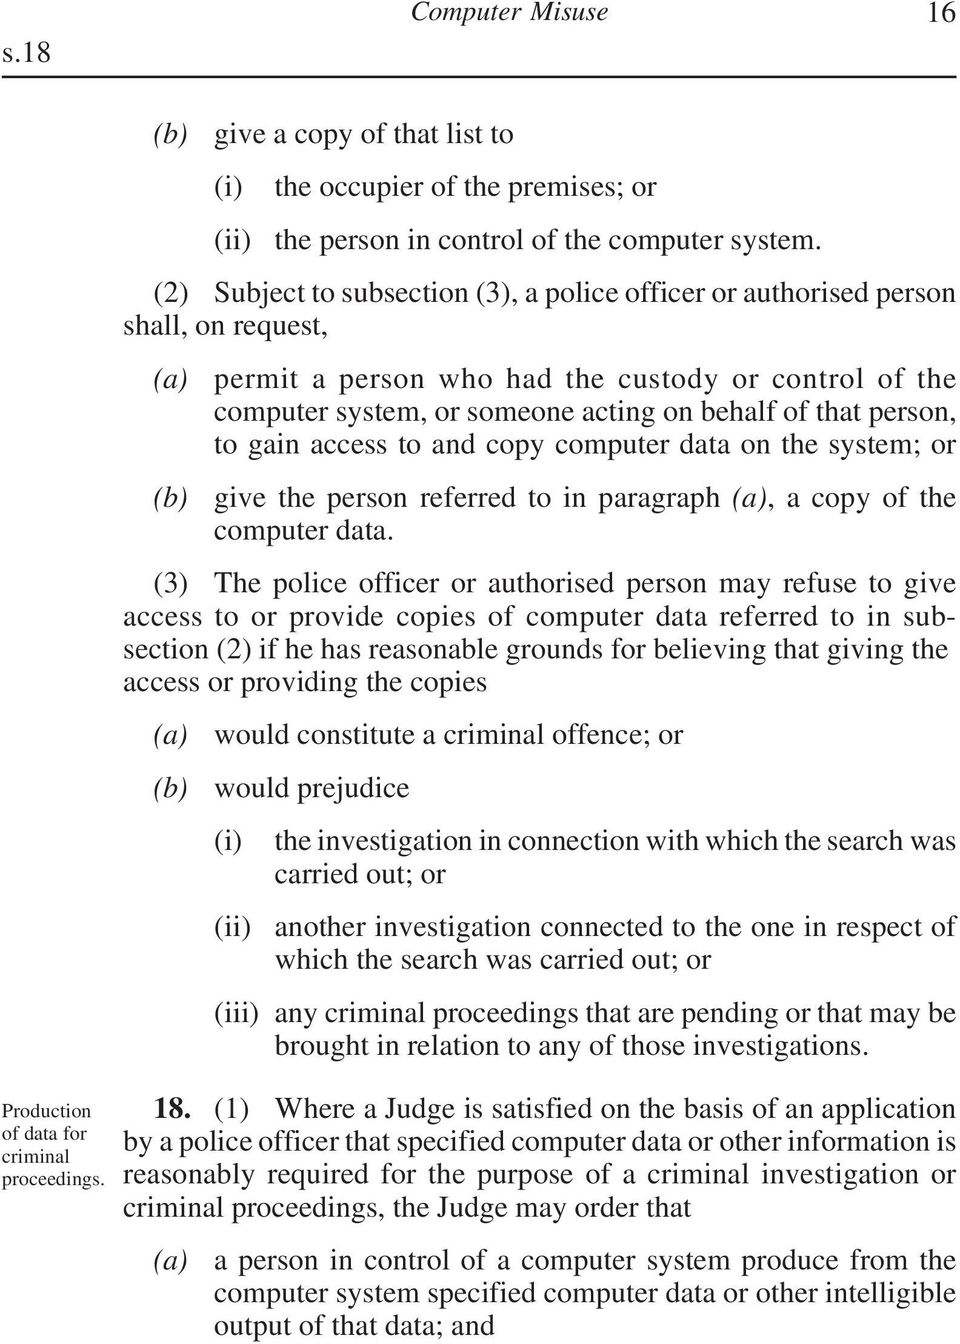 (2) Subject to subsection (3), a police officer or authorised person shall, on request, permit a person who had the custody or control of the computer system, or someone acting on behalf of that